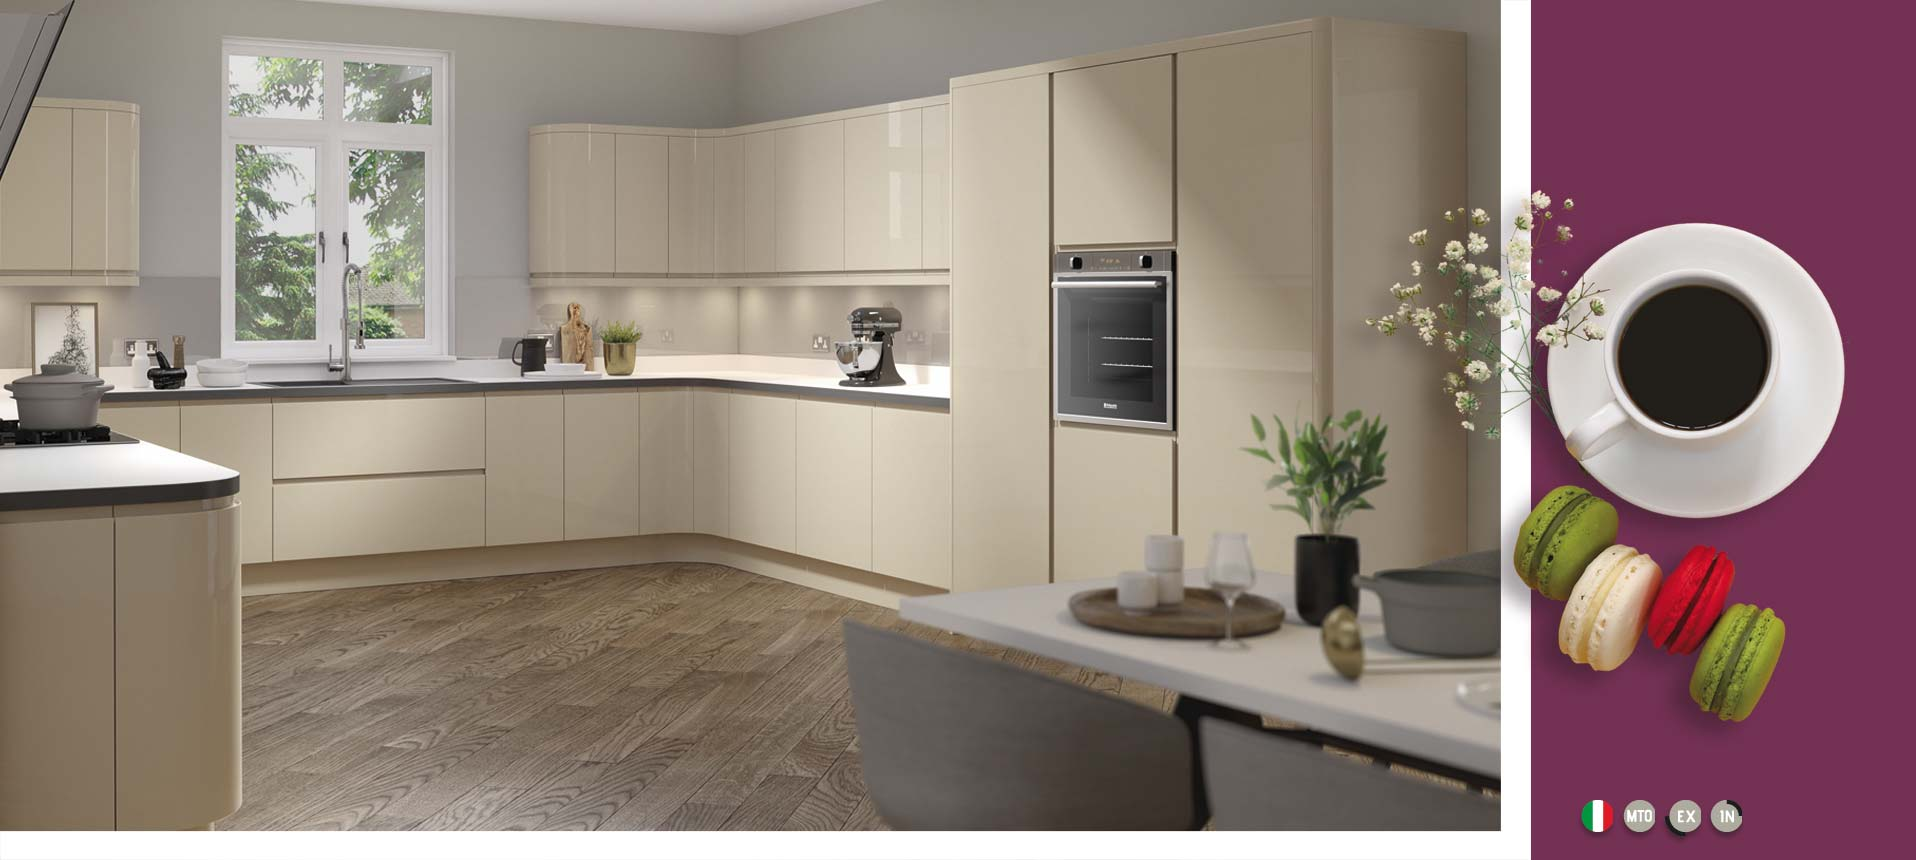 Lucente Stone Gloss Kitchens On Trend Kitchen Collection